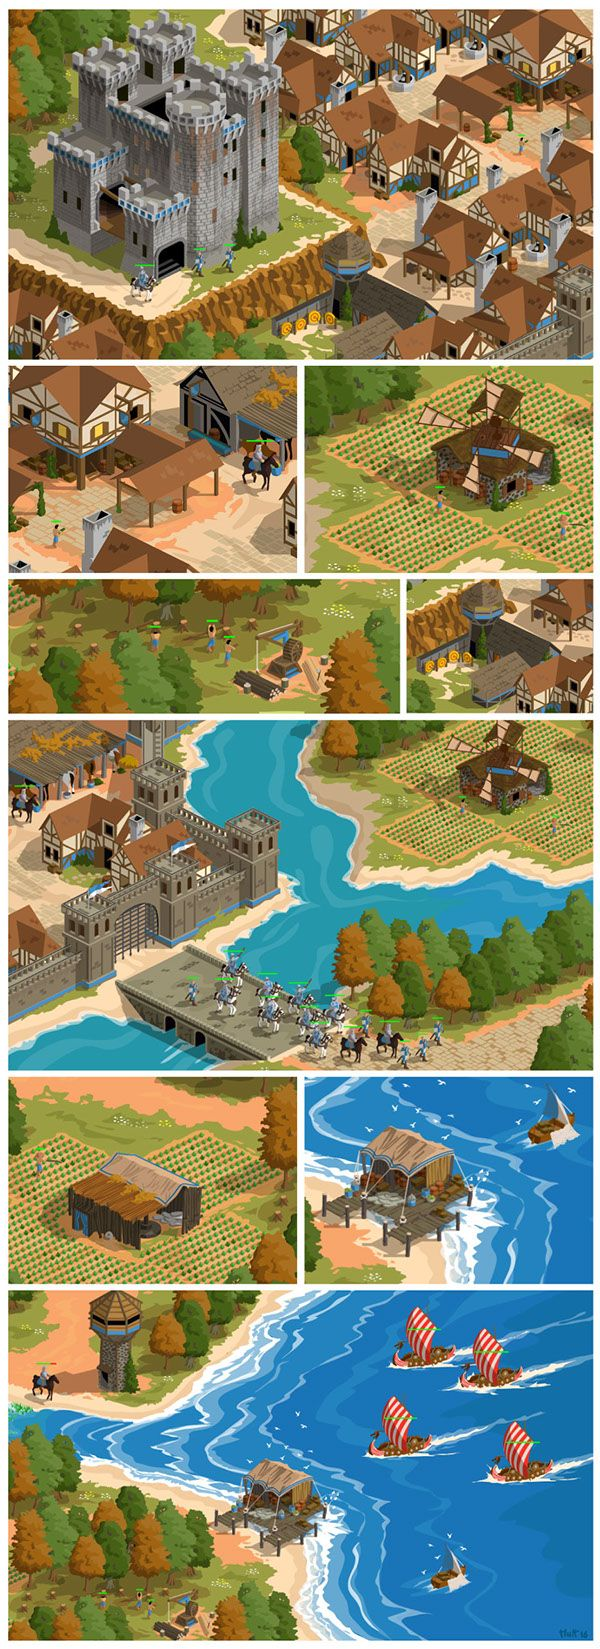 A fanart about Age of Empires 2 : Age of Kings.